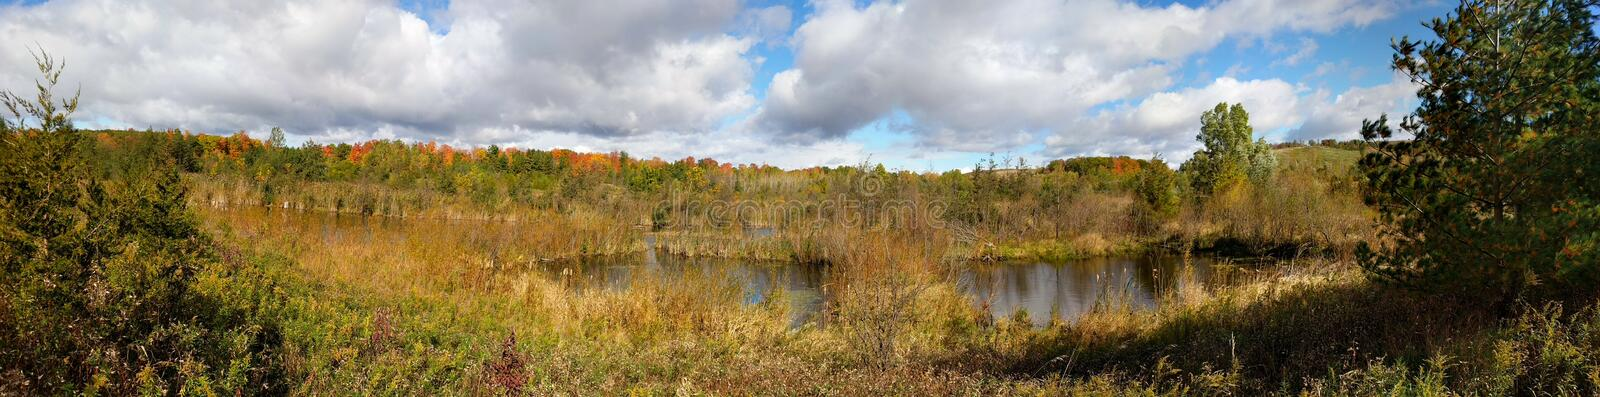 Autumn colors in Rouge National Urban Park. Panoramic of autumn colors in Rouge National Urban Park in Toronto, Ontario, Canada royalty free stock photo